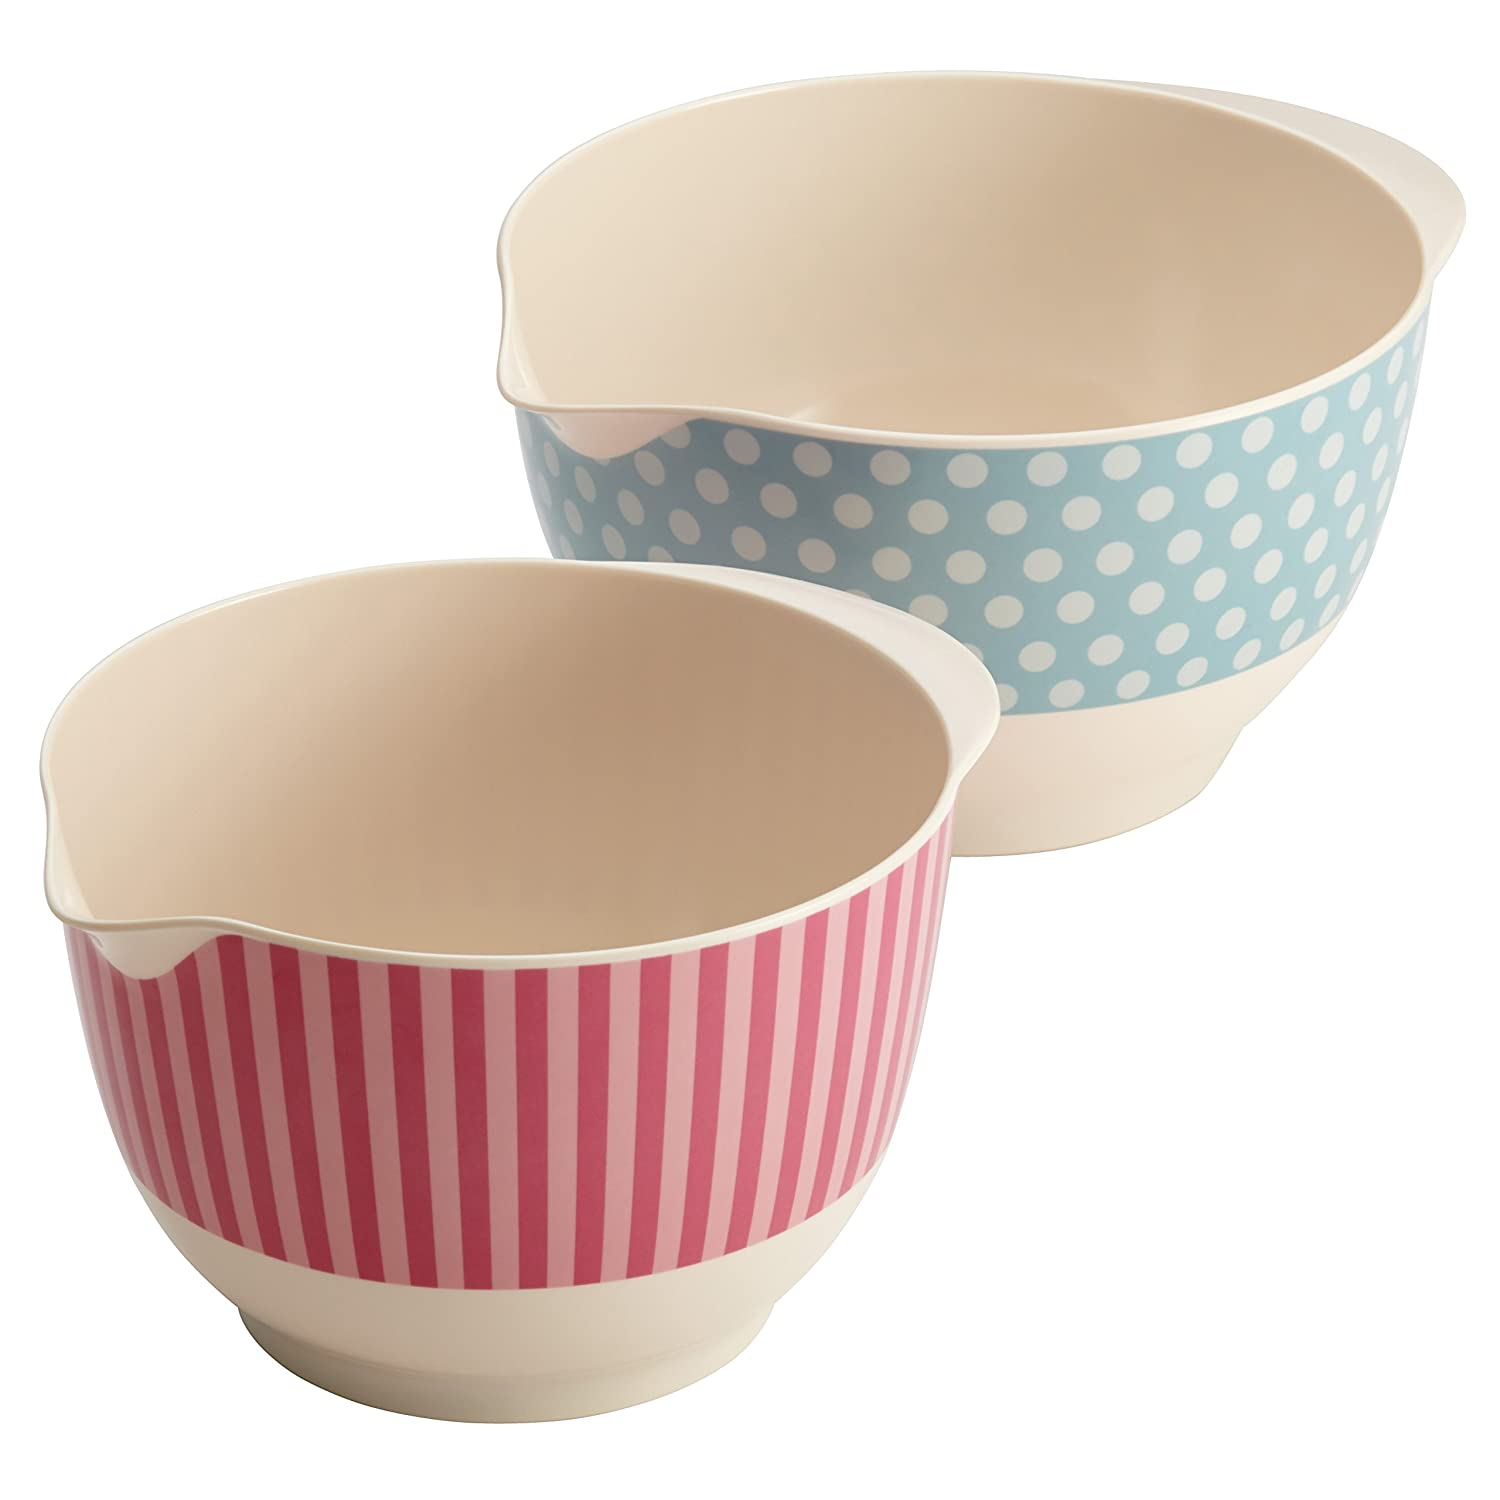 Melamine Mixing Bowls, Set of 2